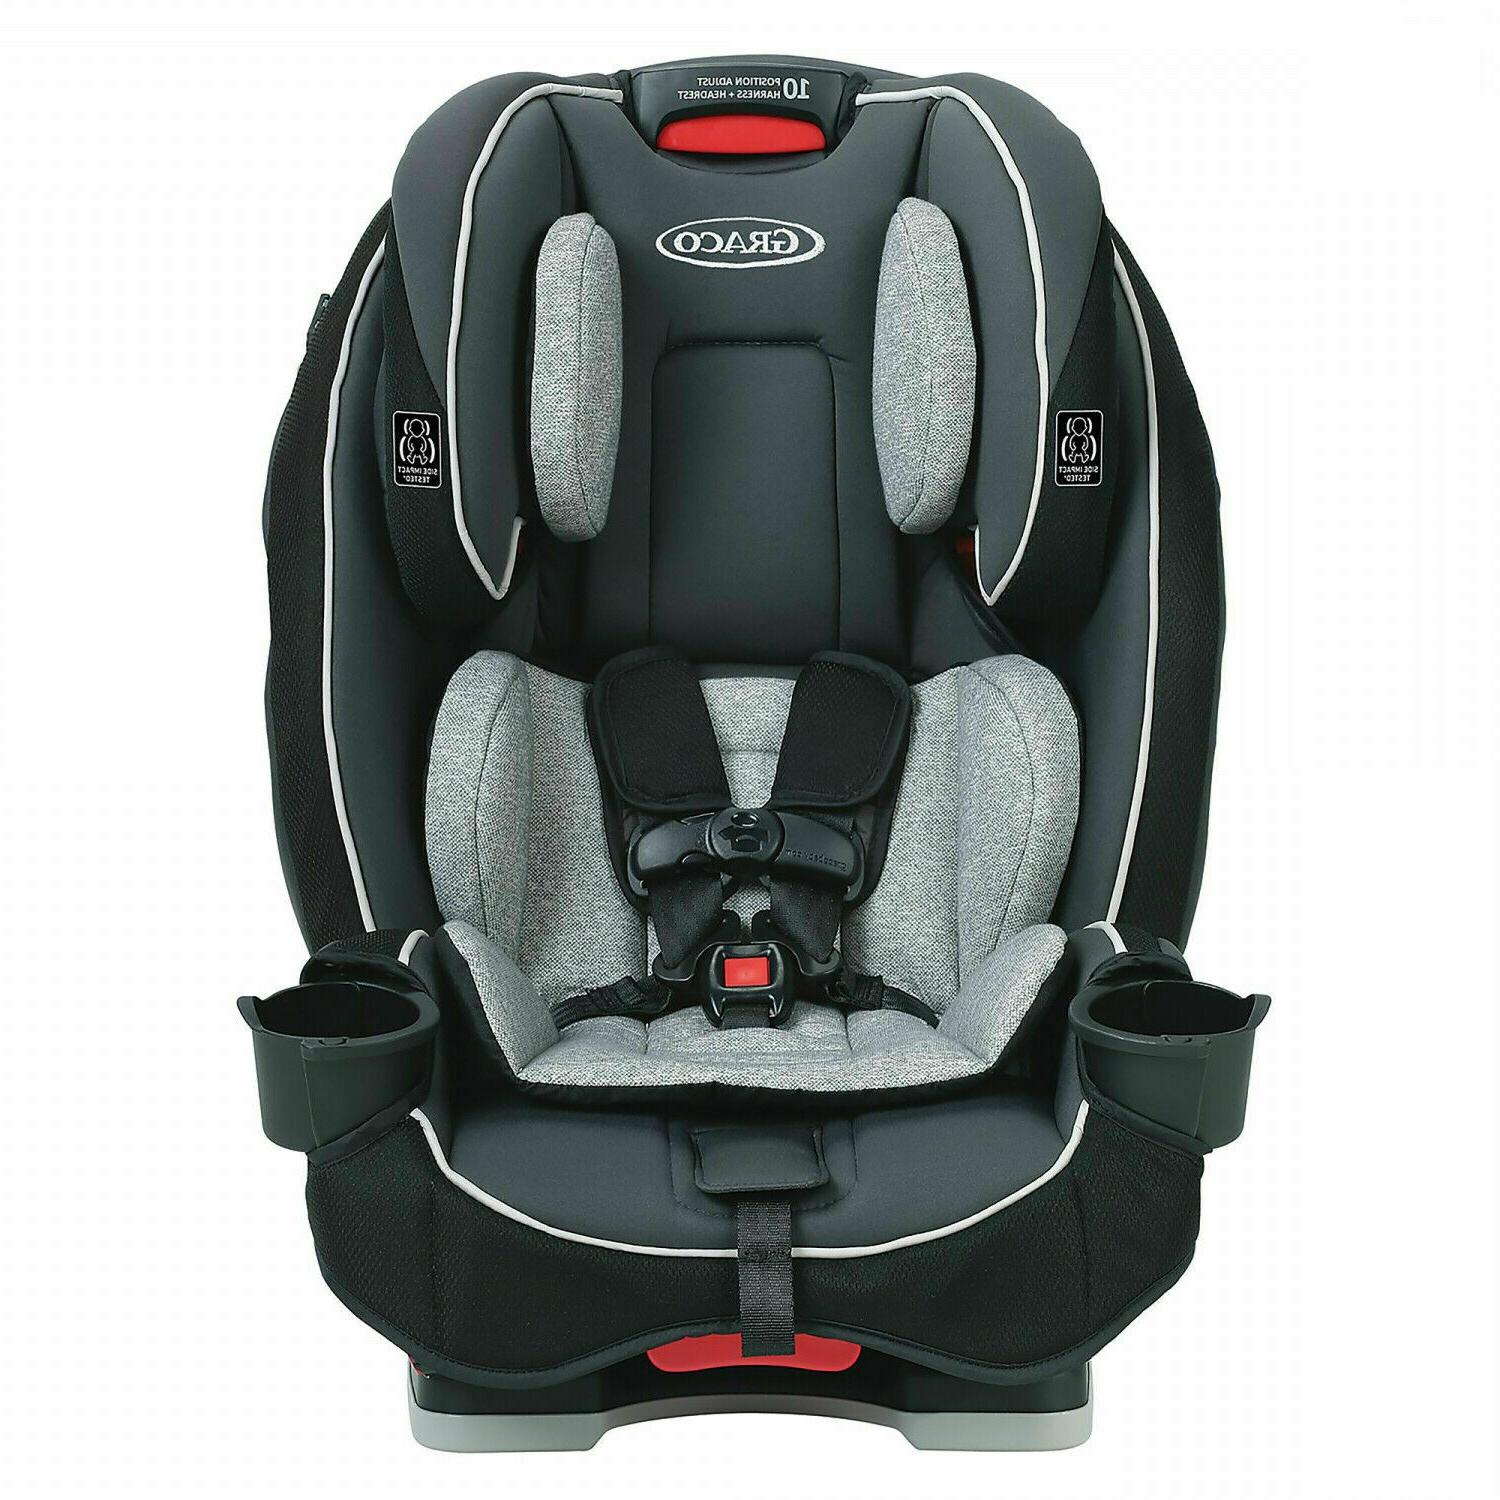 Graco Car Seat New